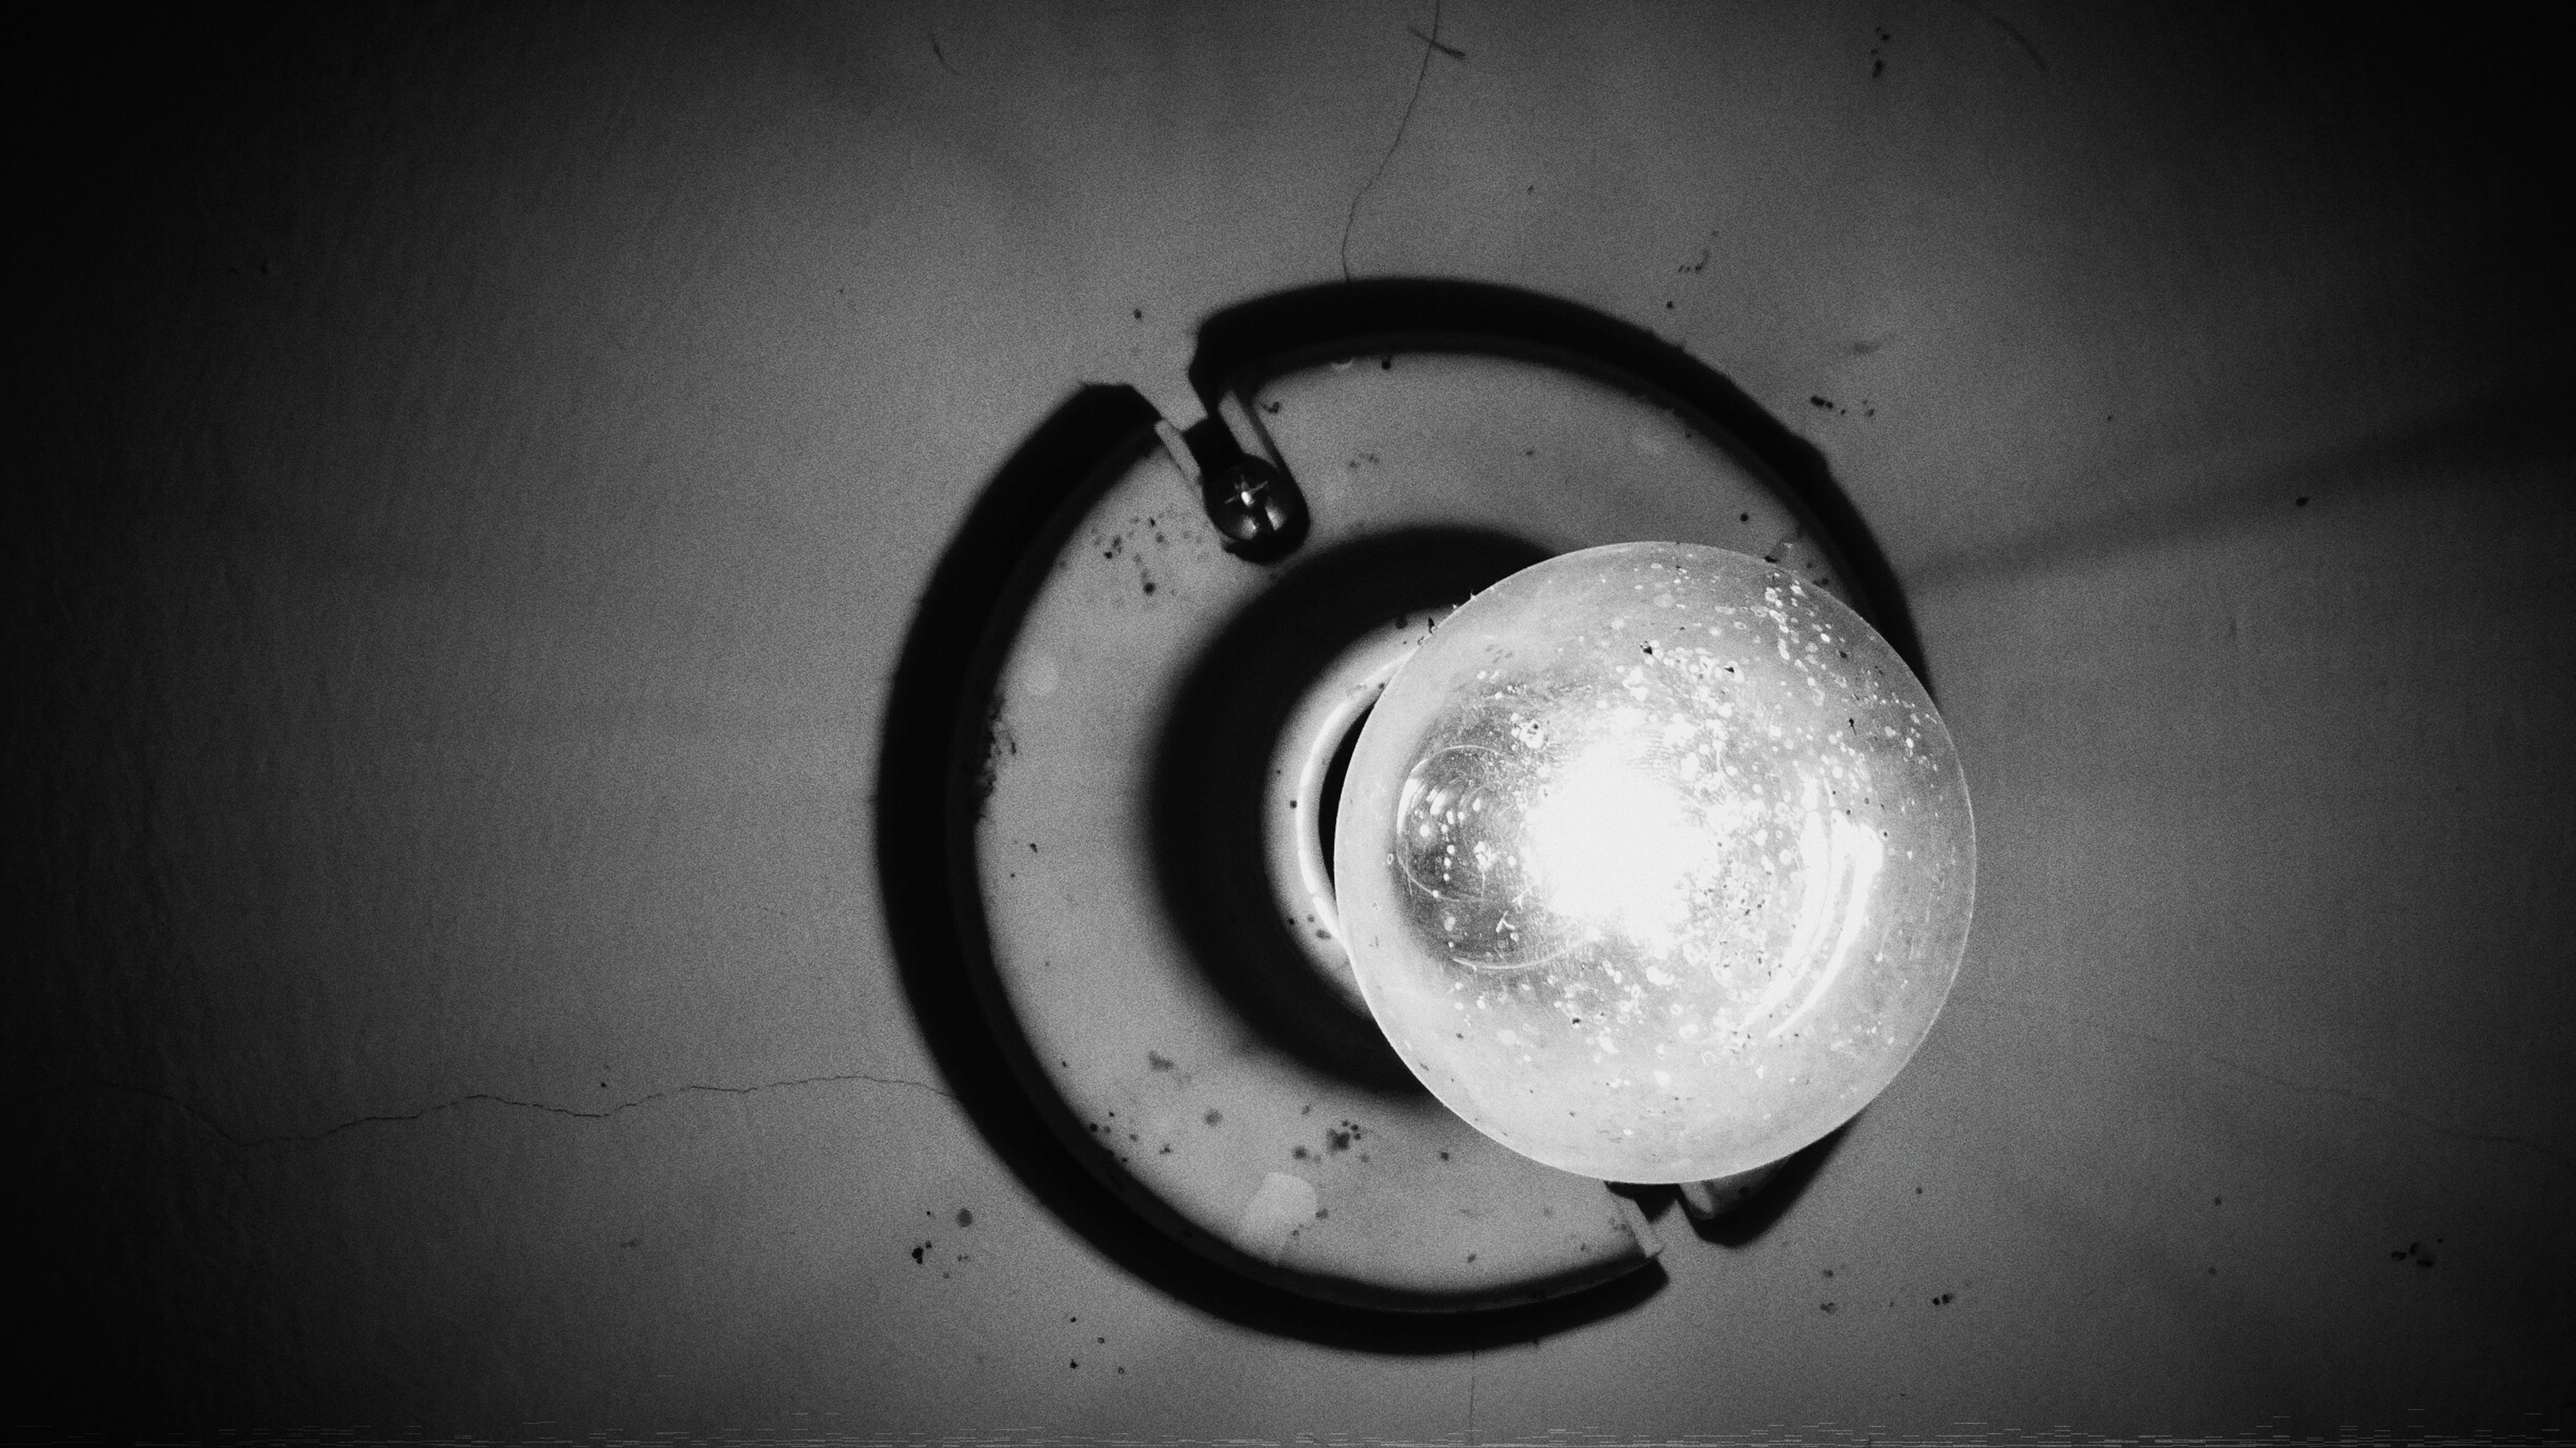 indoors, close-up, metal, single object, still life, wall - building feature, circle, no people, high angle view, metallic, electricity, technology, old-fashioned, directly above, table, old, man made object, geometric shape, sink, simplicity